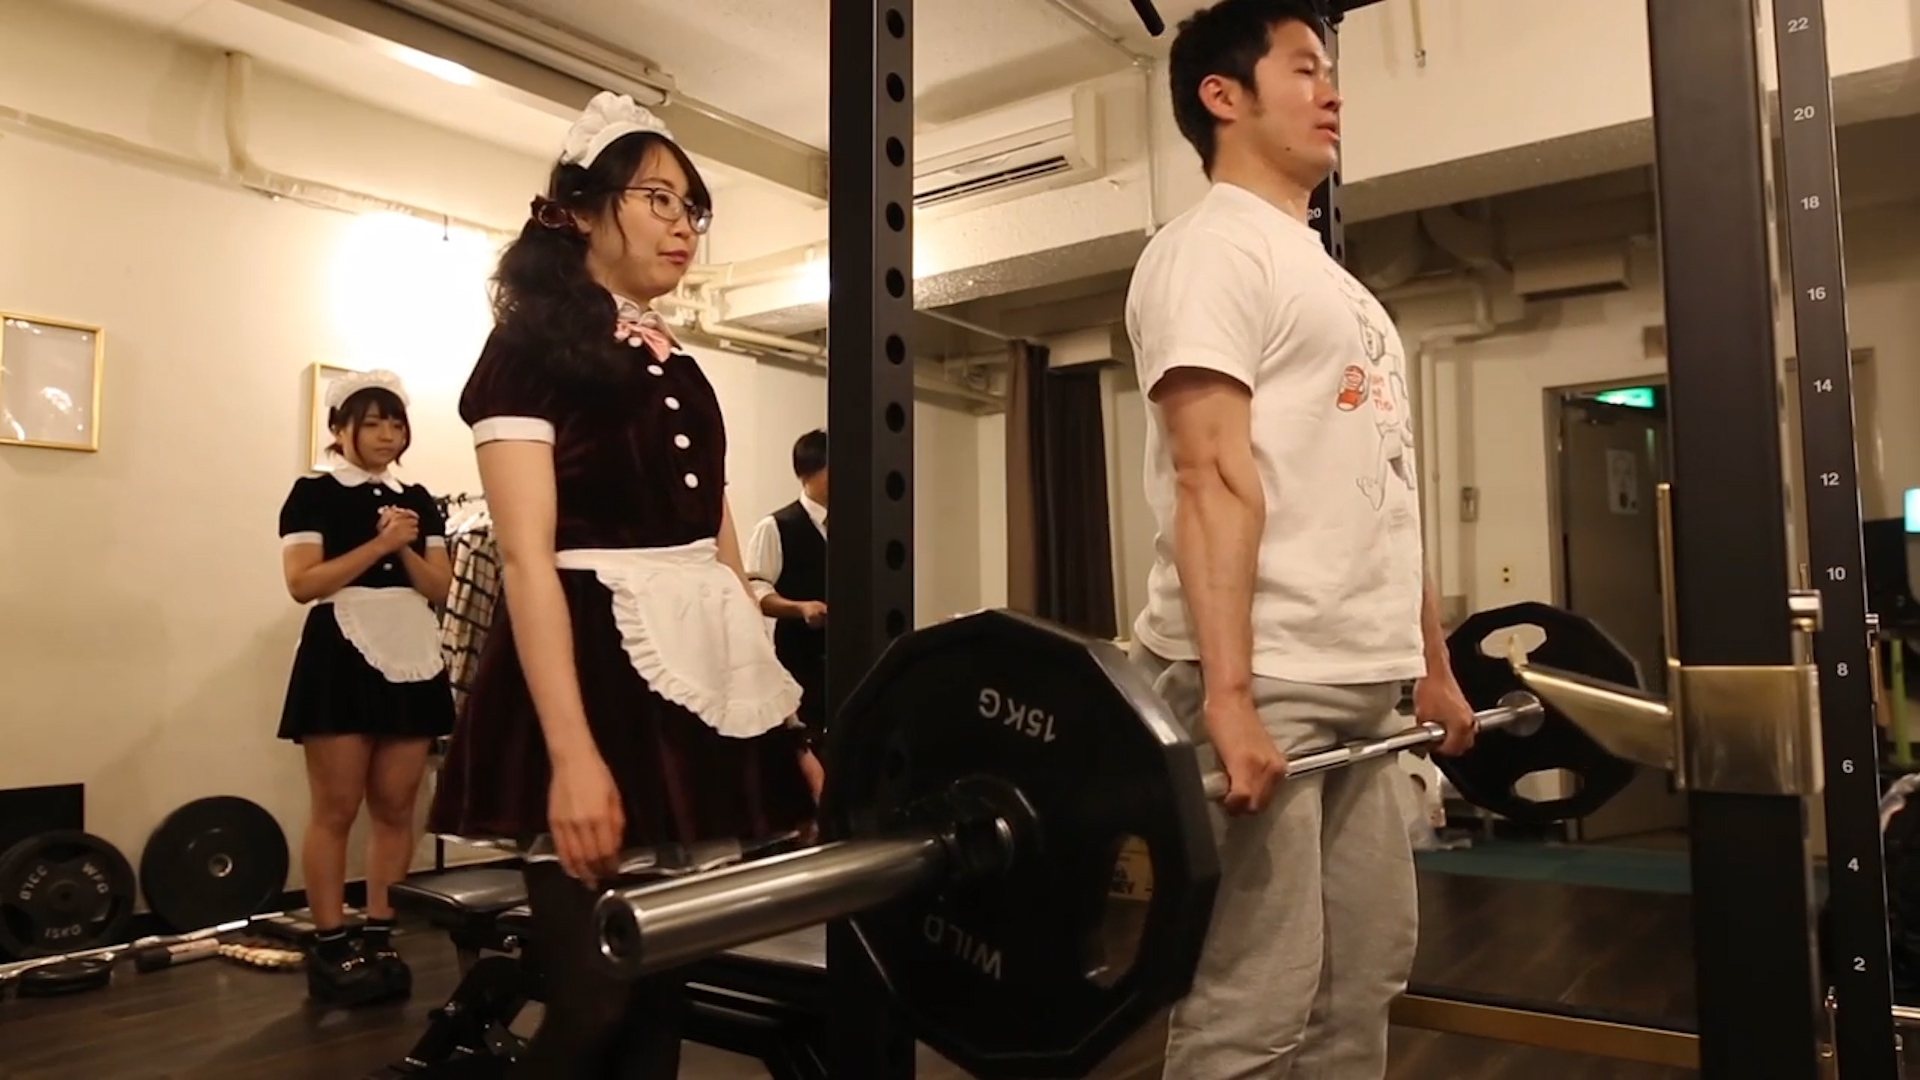 Maid In Tokyo This Gym Adds A Frilly Twist To Your -4516